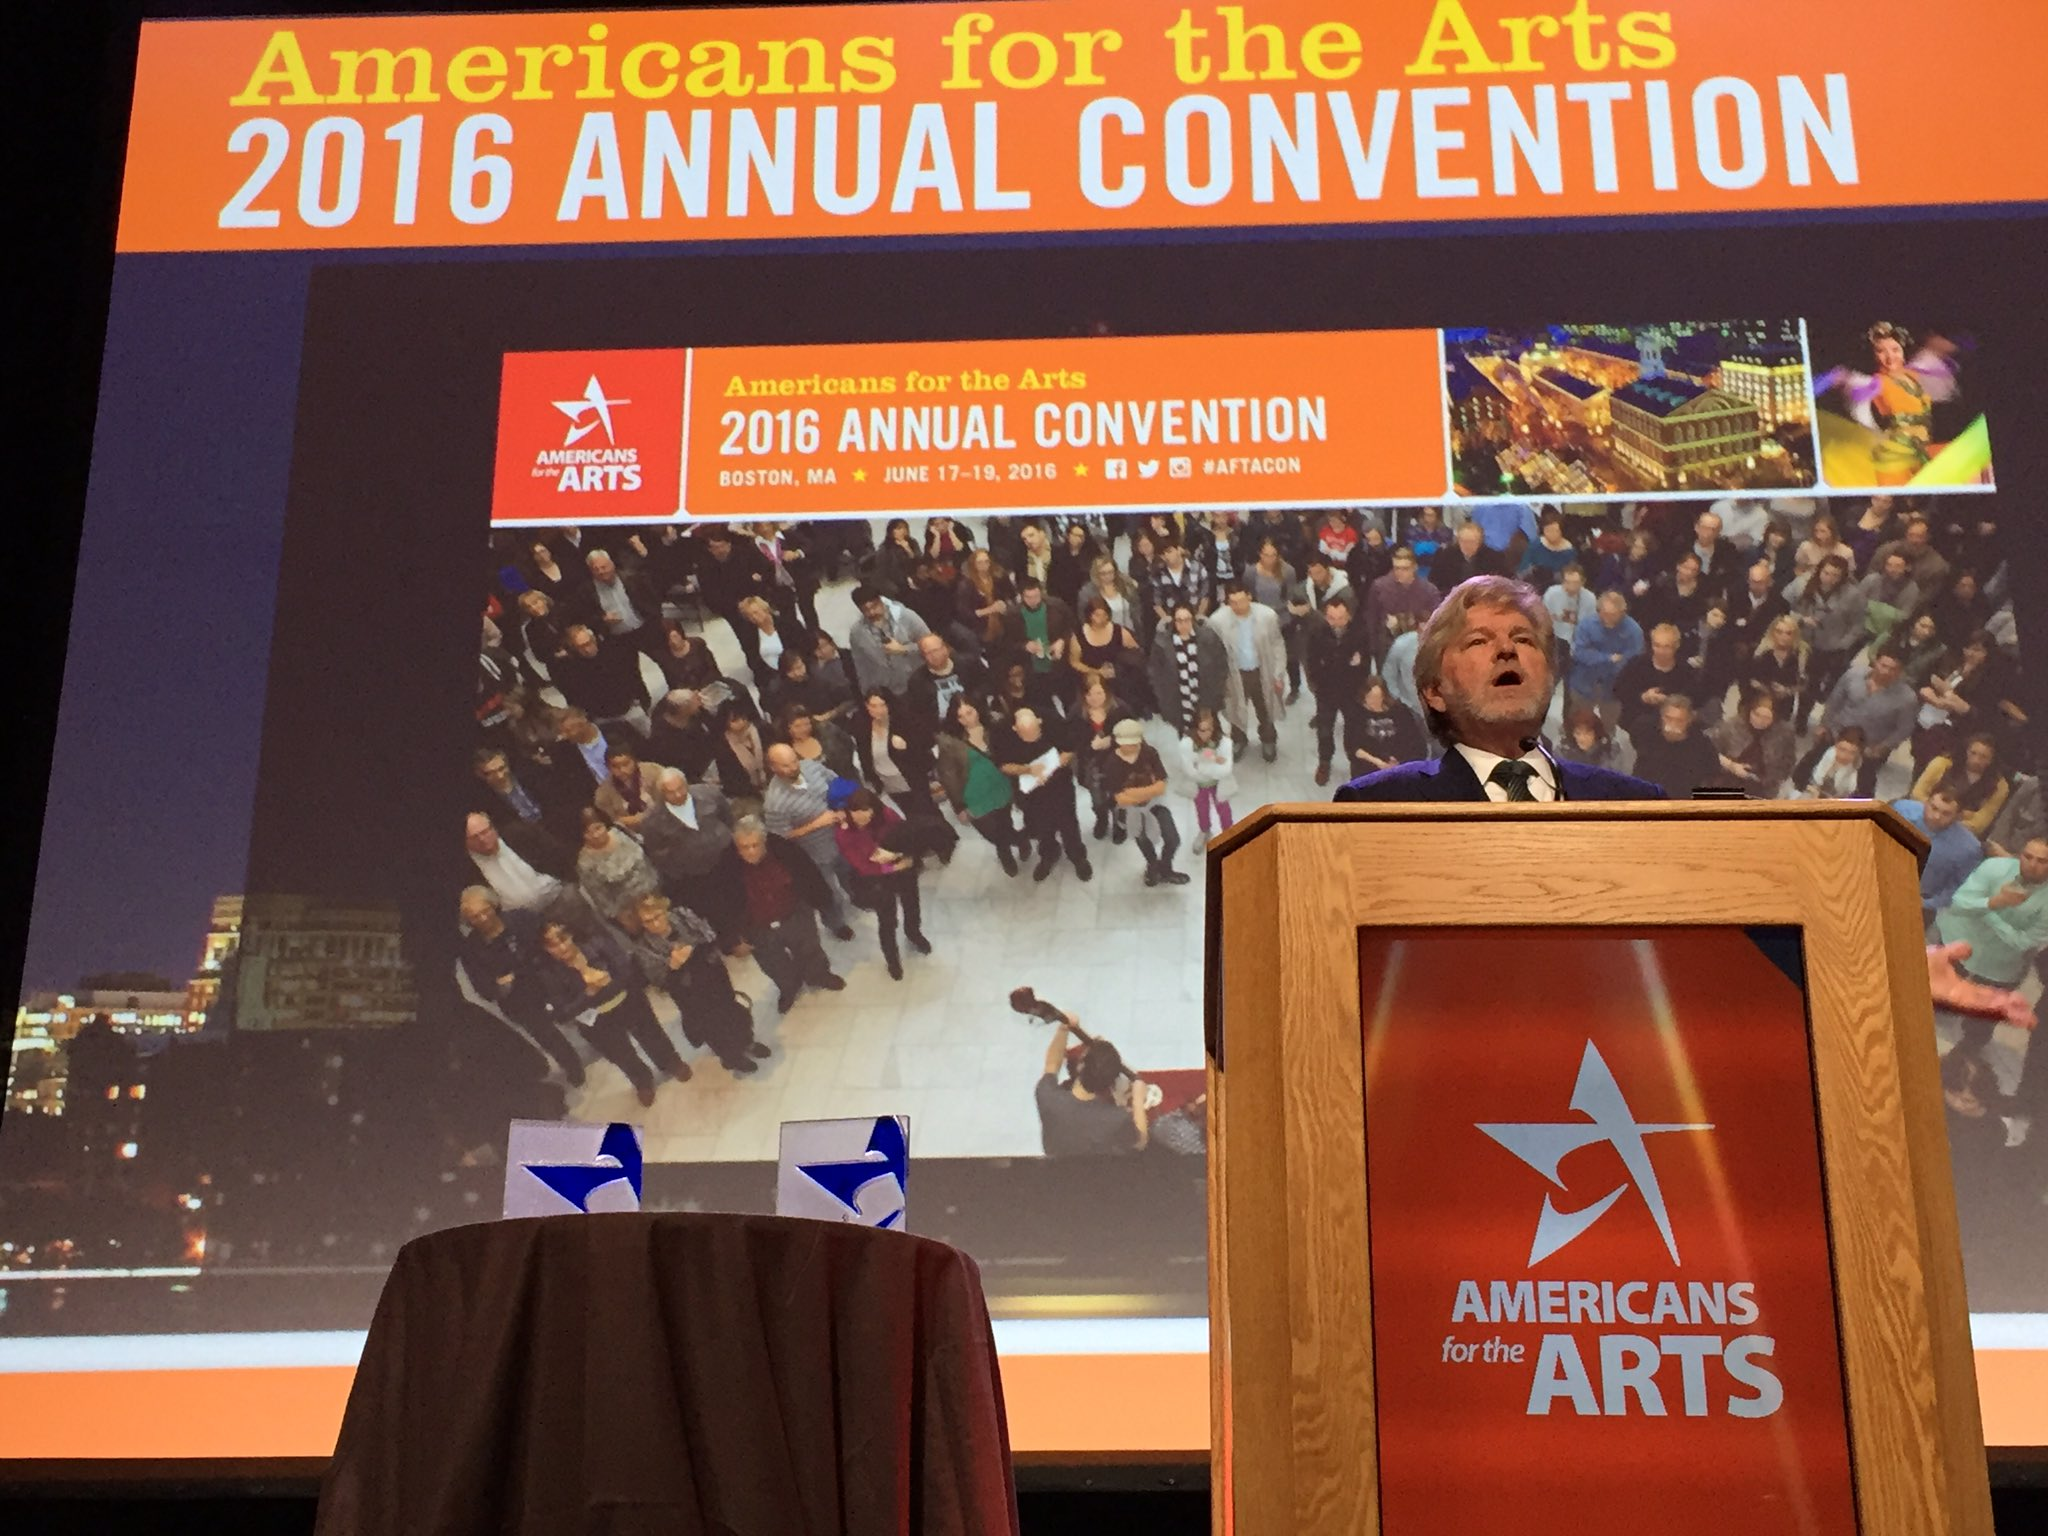 """The arts tell us who we are and how we got here."" #ArtsCEOLynch annual State of the Arts speech at #AFTACON https://t.co/bze7puKhGB"